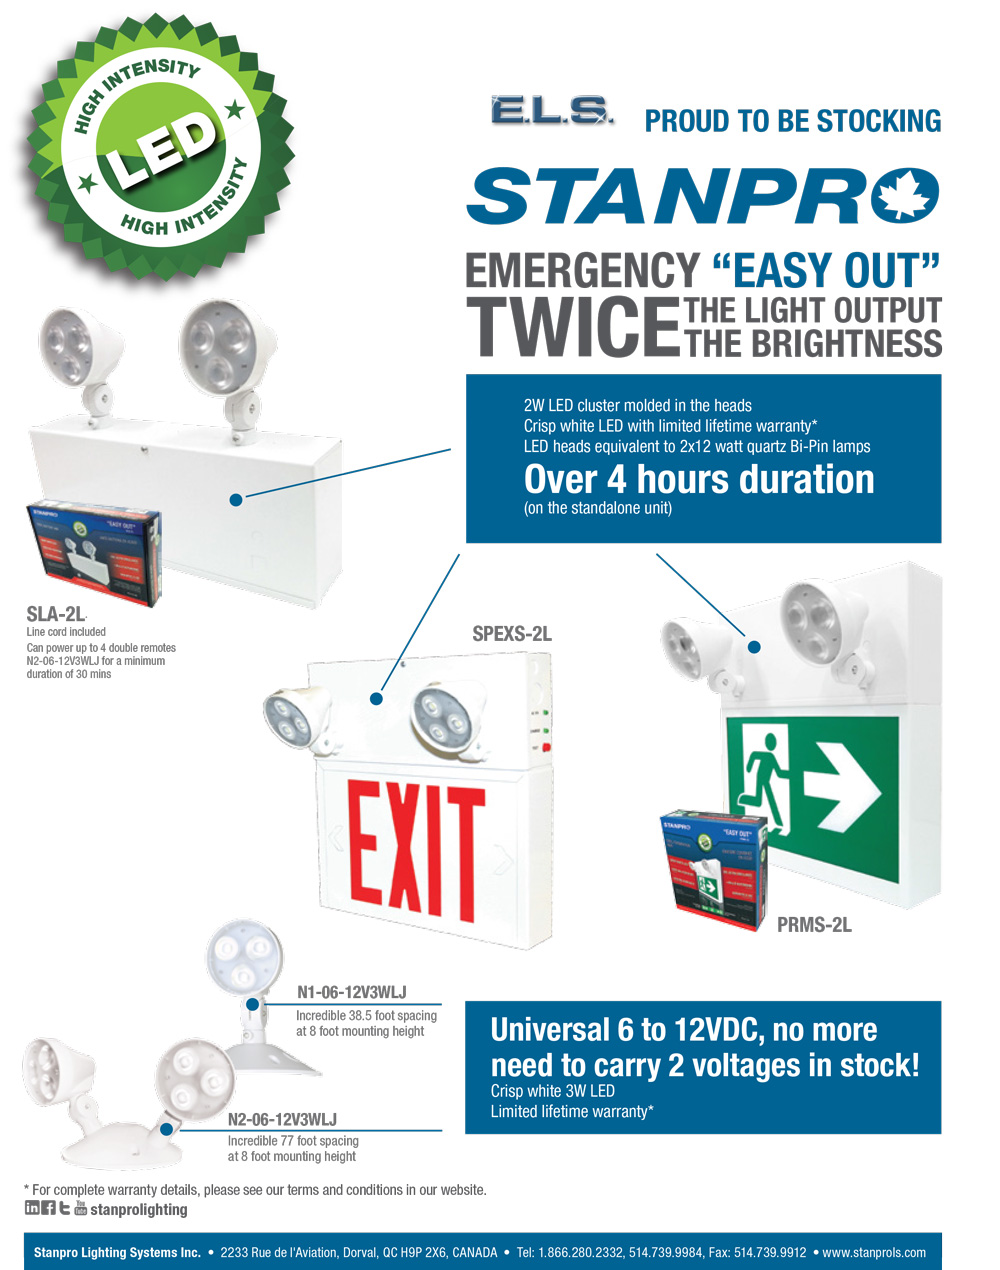 ELS Stanpro LED Flyer